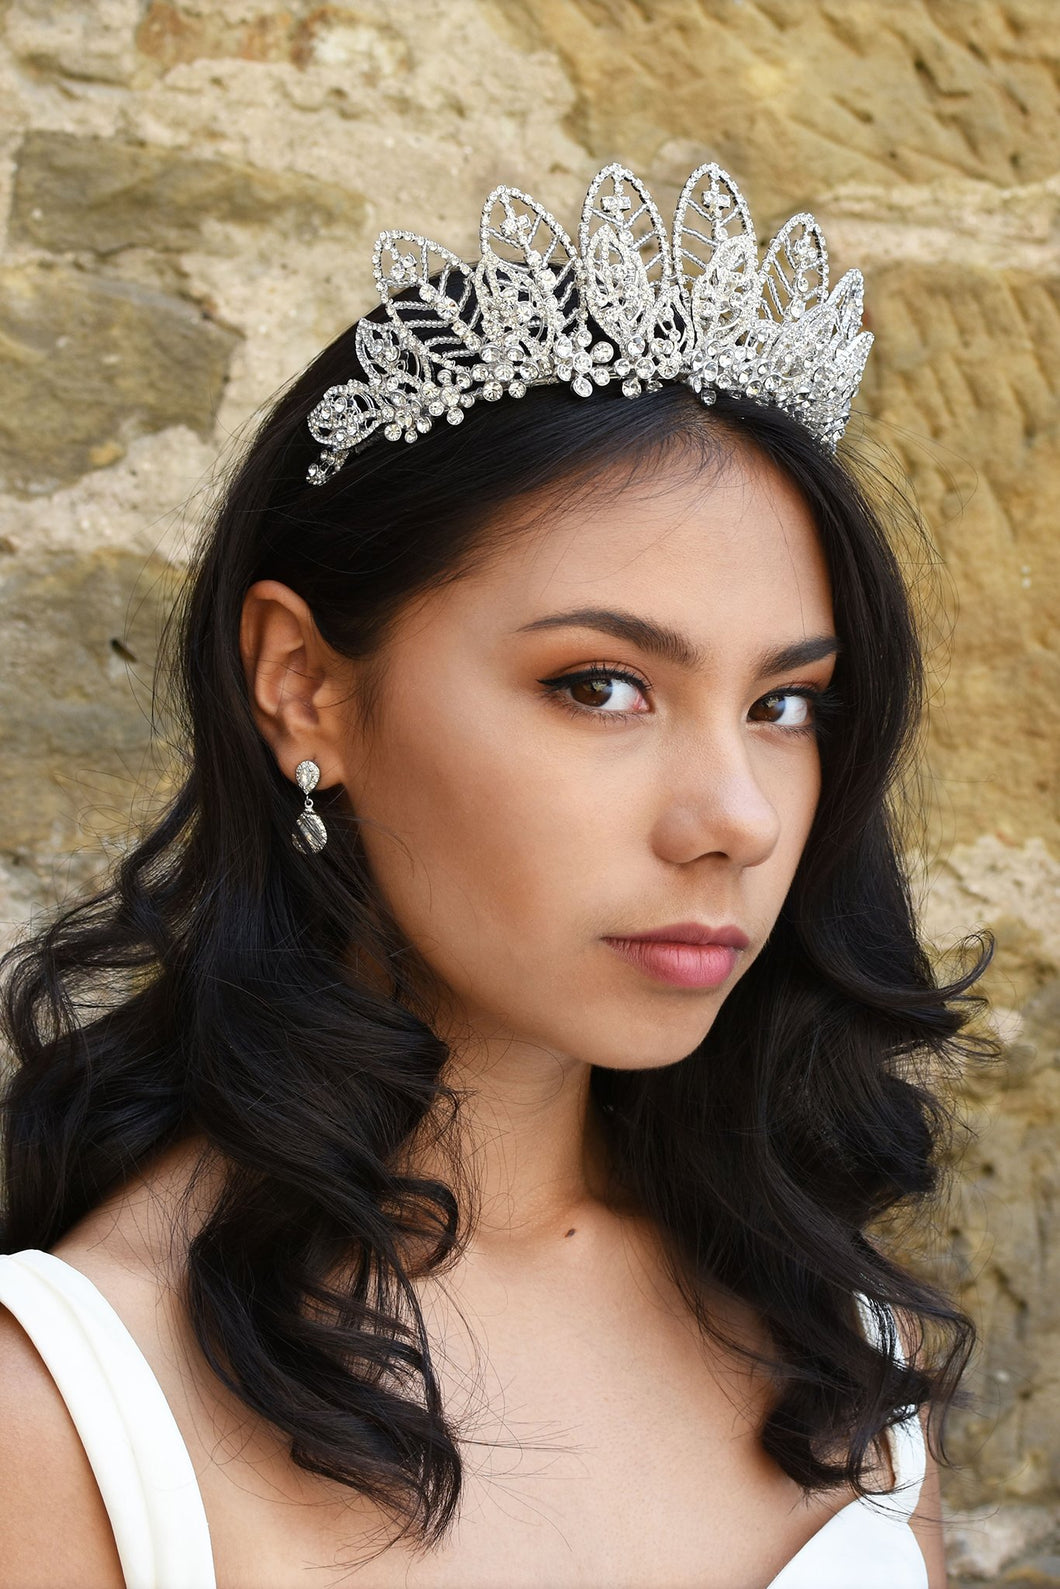 High Tiara with Silver leaves design worn by a dark hair bride in front of an old sandstone wall